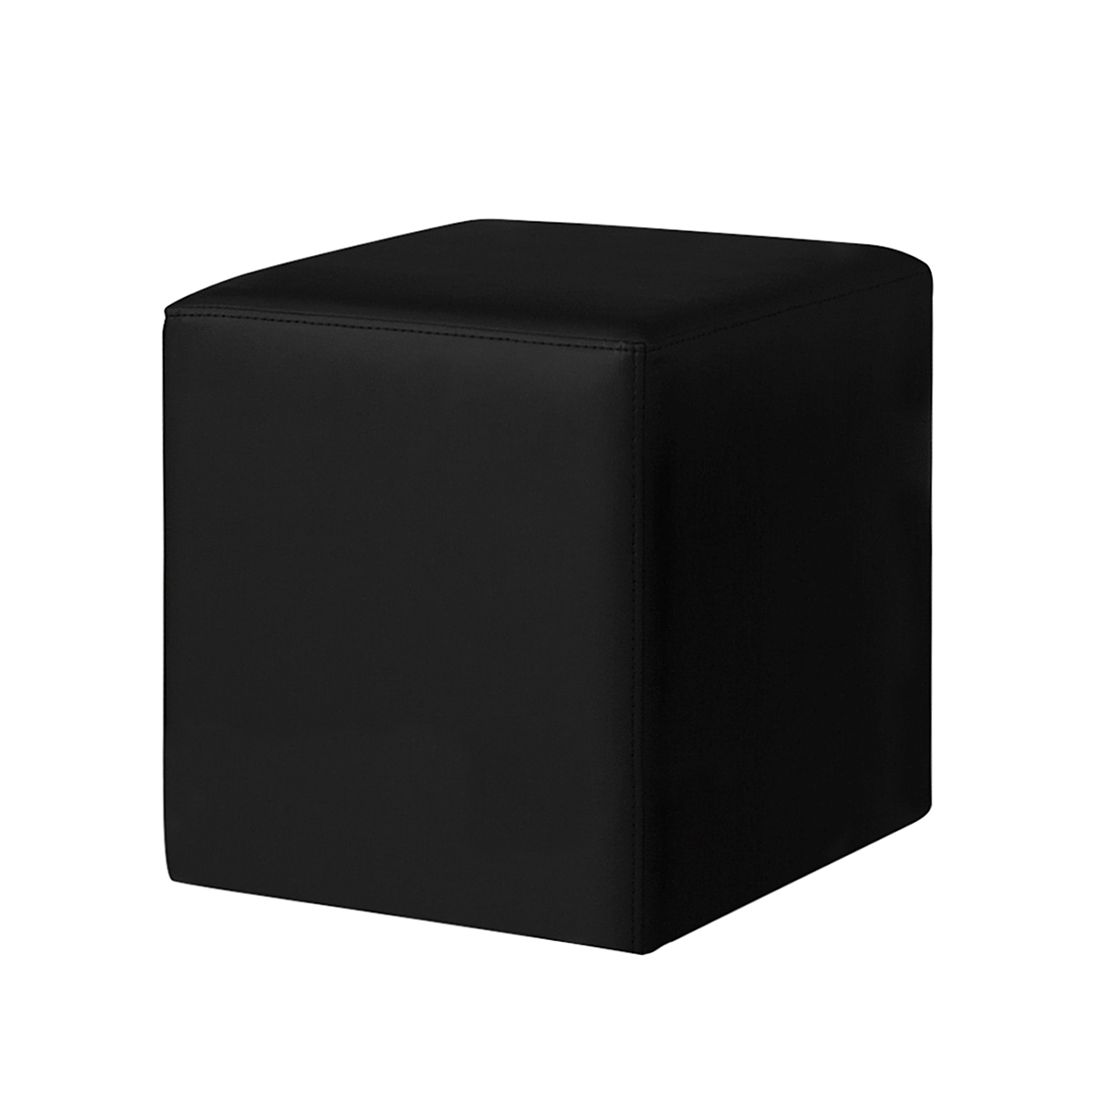 polsterw rfel cube kunstleder schwarz meise m bel g nstig kaufen. Black Bedroom Furniture Sets. Home Design Ideas